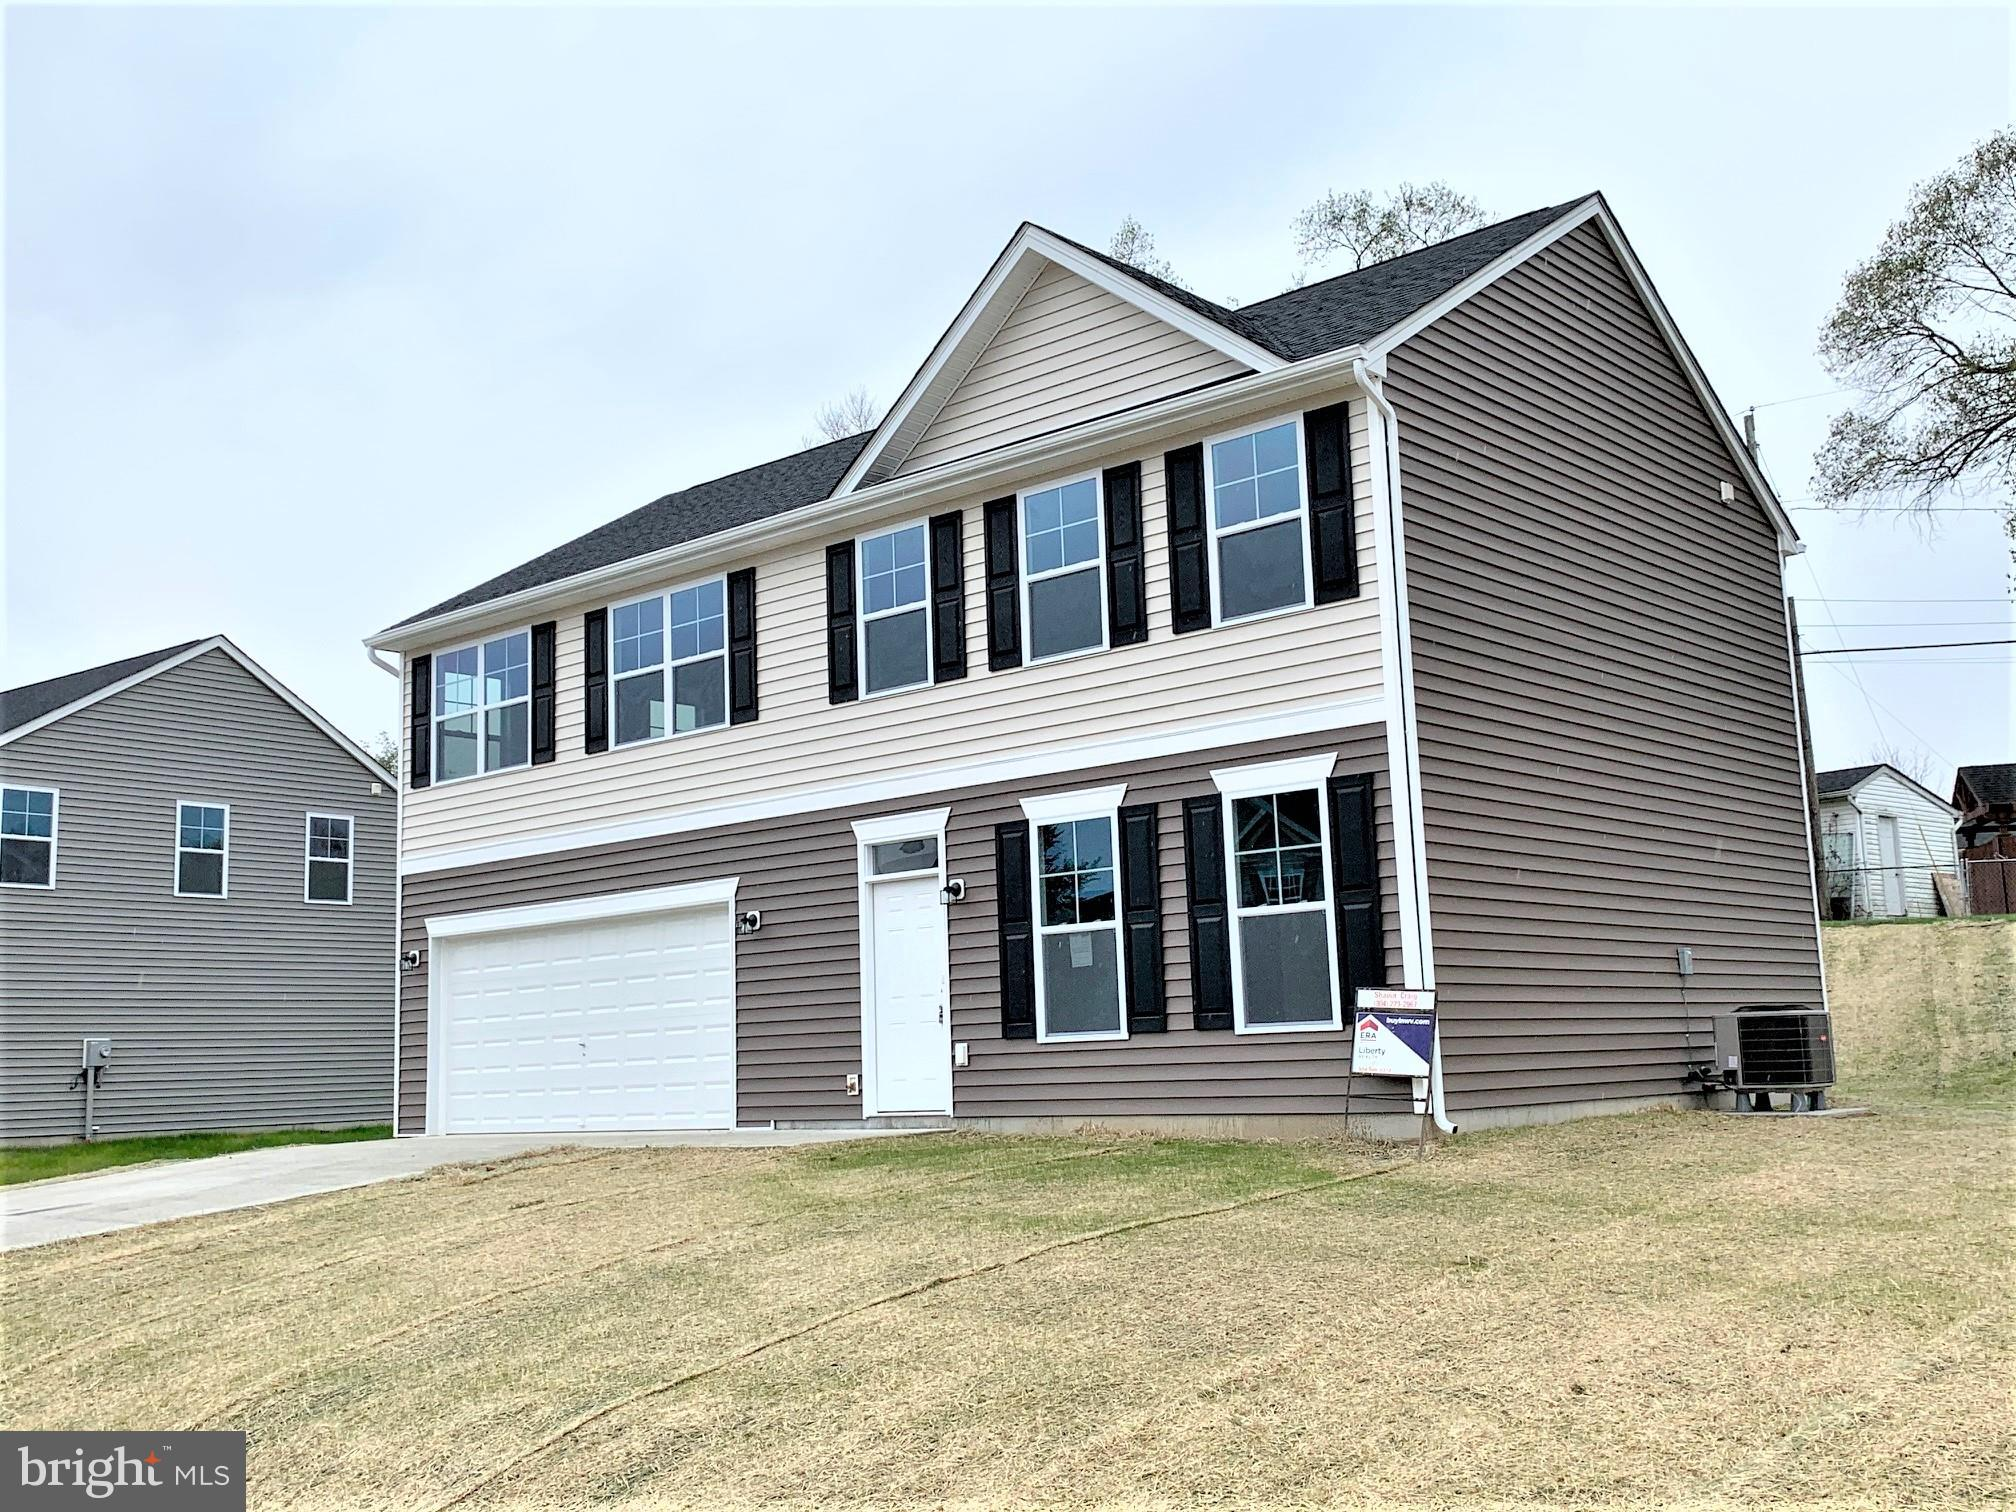 New 2000+ sqft 4 bedroom Colonial To Be Built in Hedgesville location on corner Lot.  Features inclu